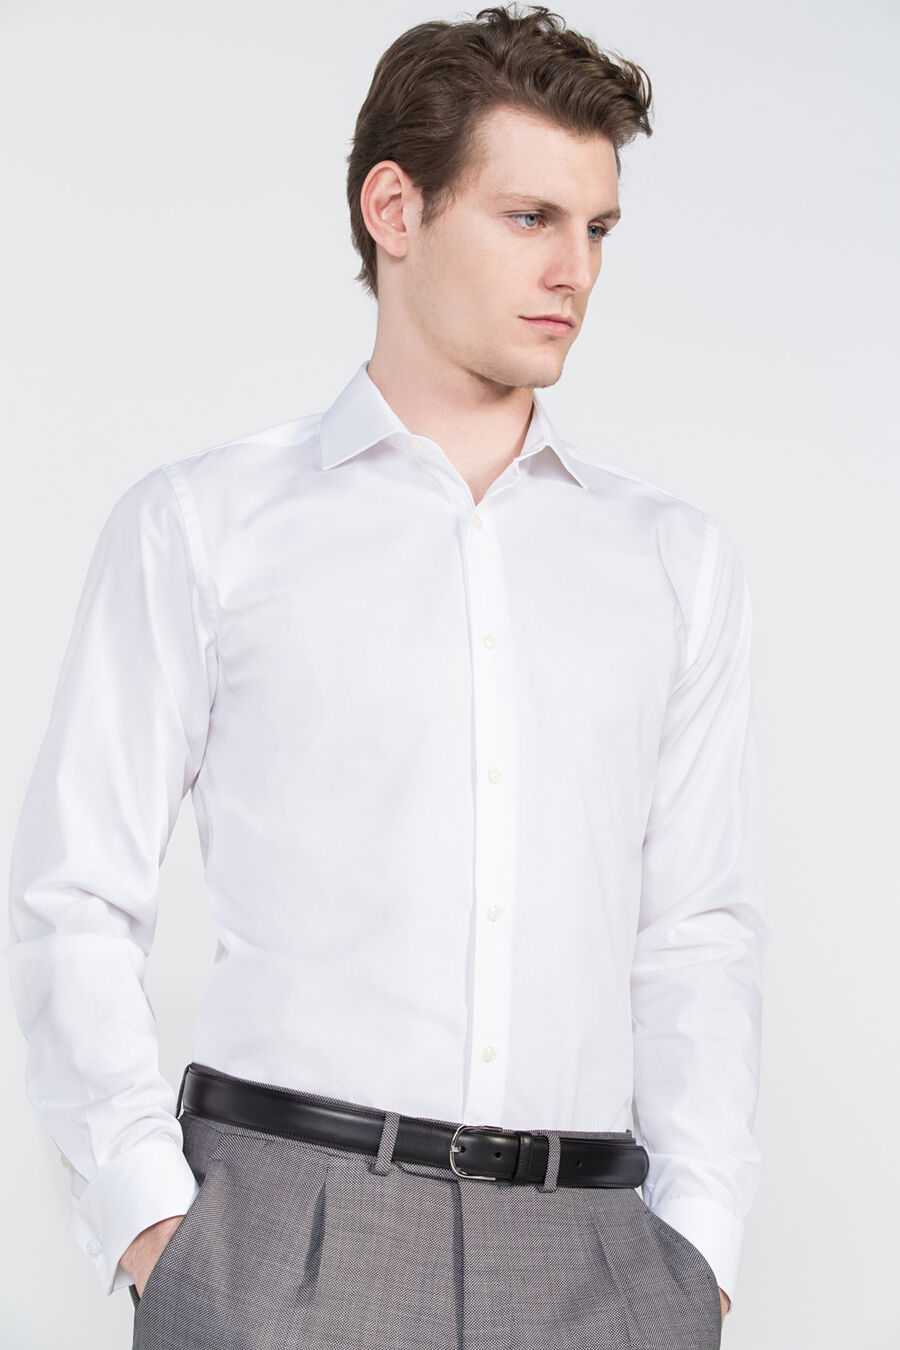 Plain tailored dress shirt